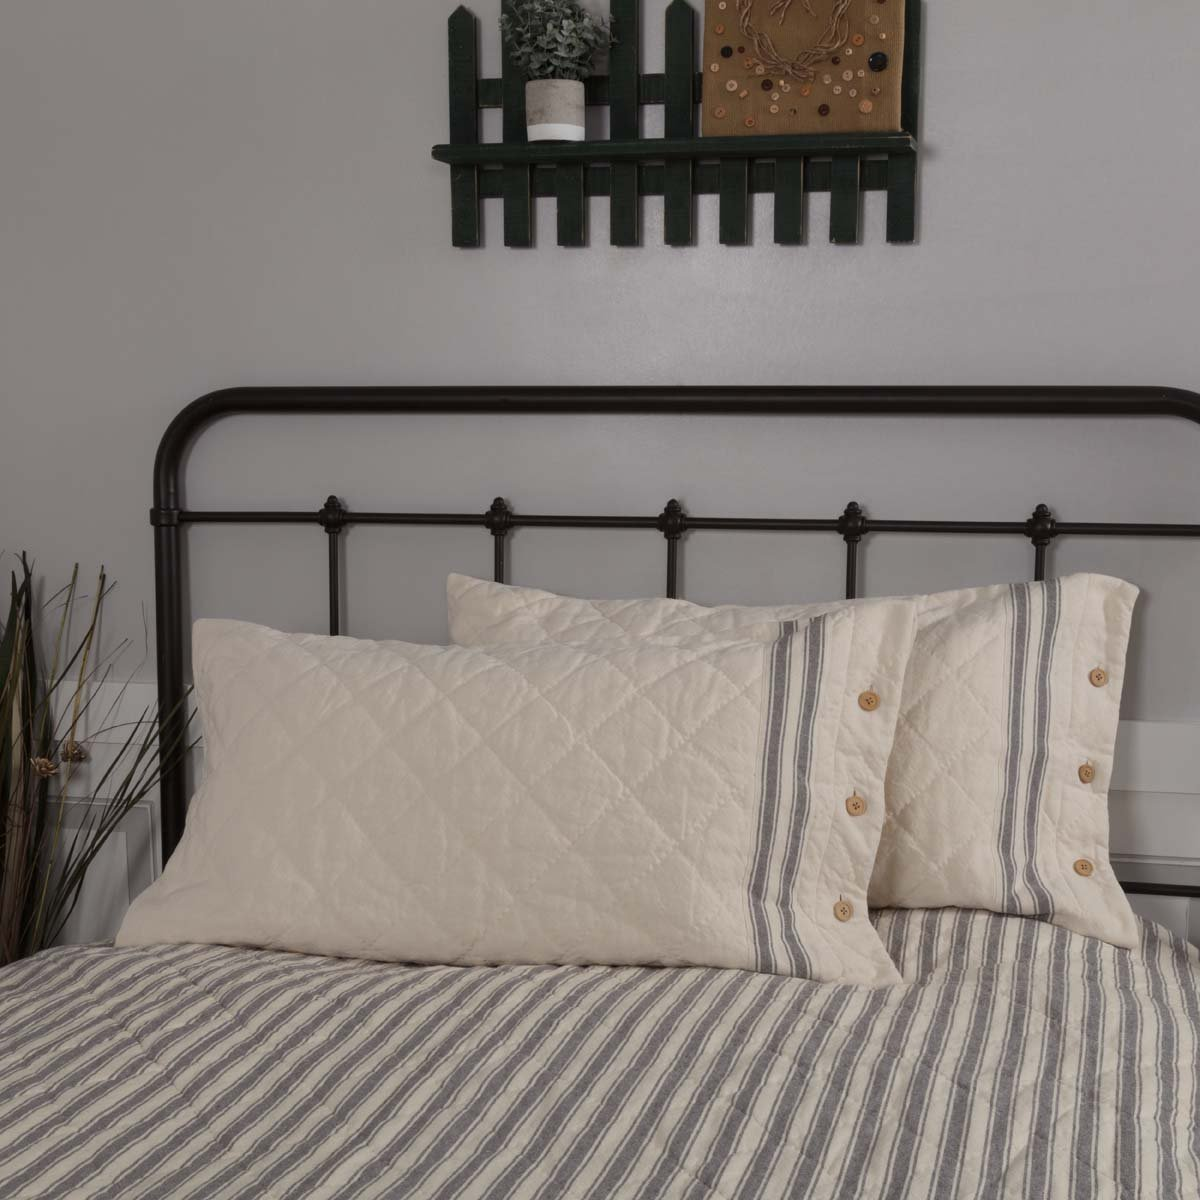 Piper Classics Market Place Gray Quilted King Pillow Sham, 21x37, Cream w/Grain Sack Stripe & Button Details